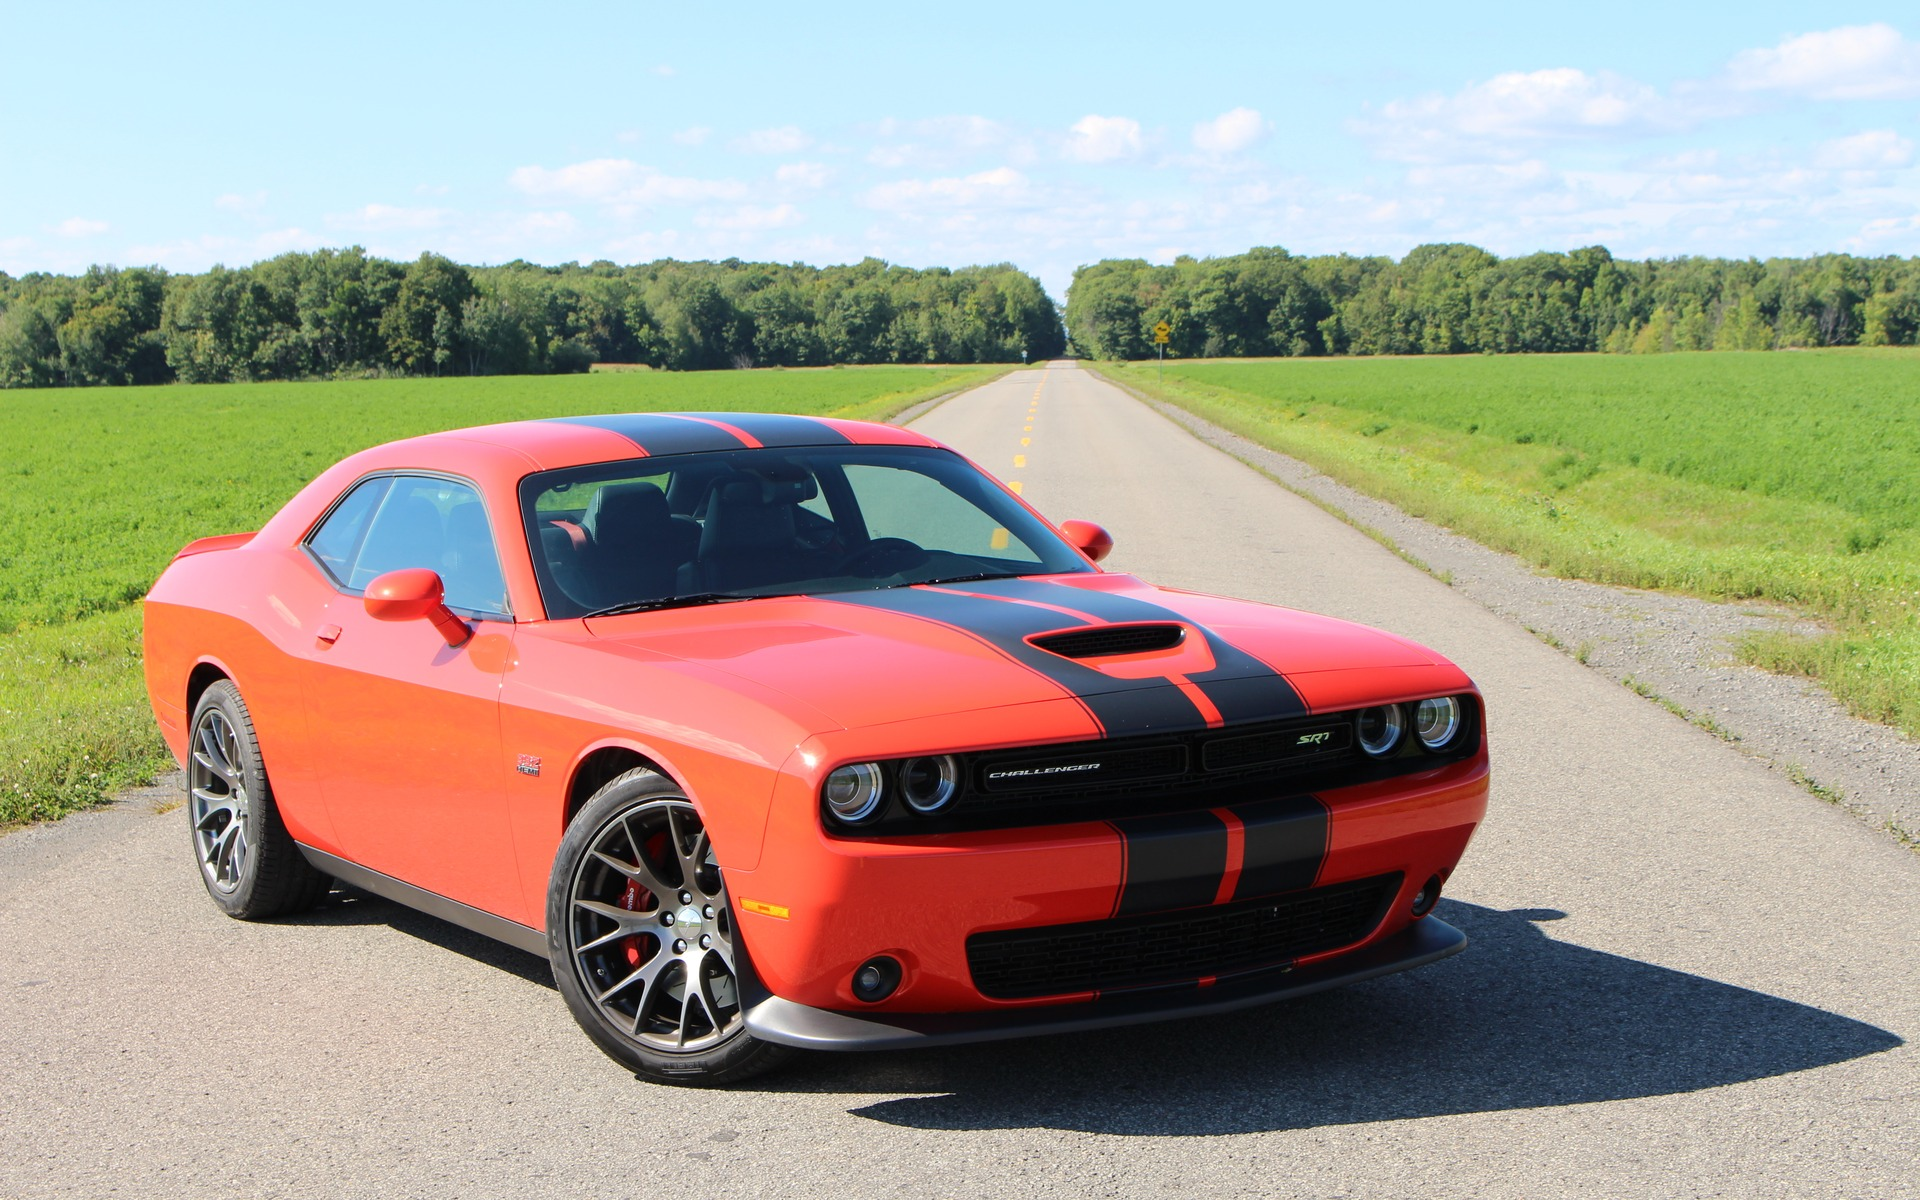 2016 Dodge Challenger Srt 392 Fountain Of Youth The Car